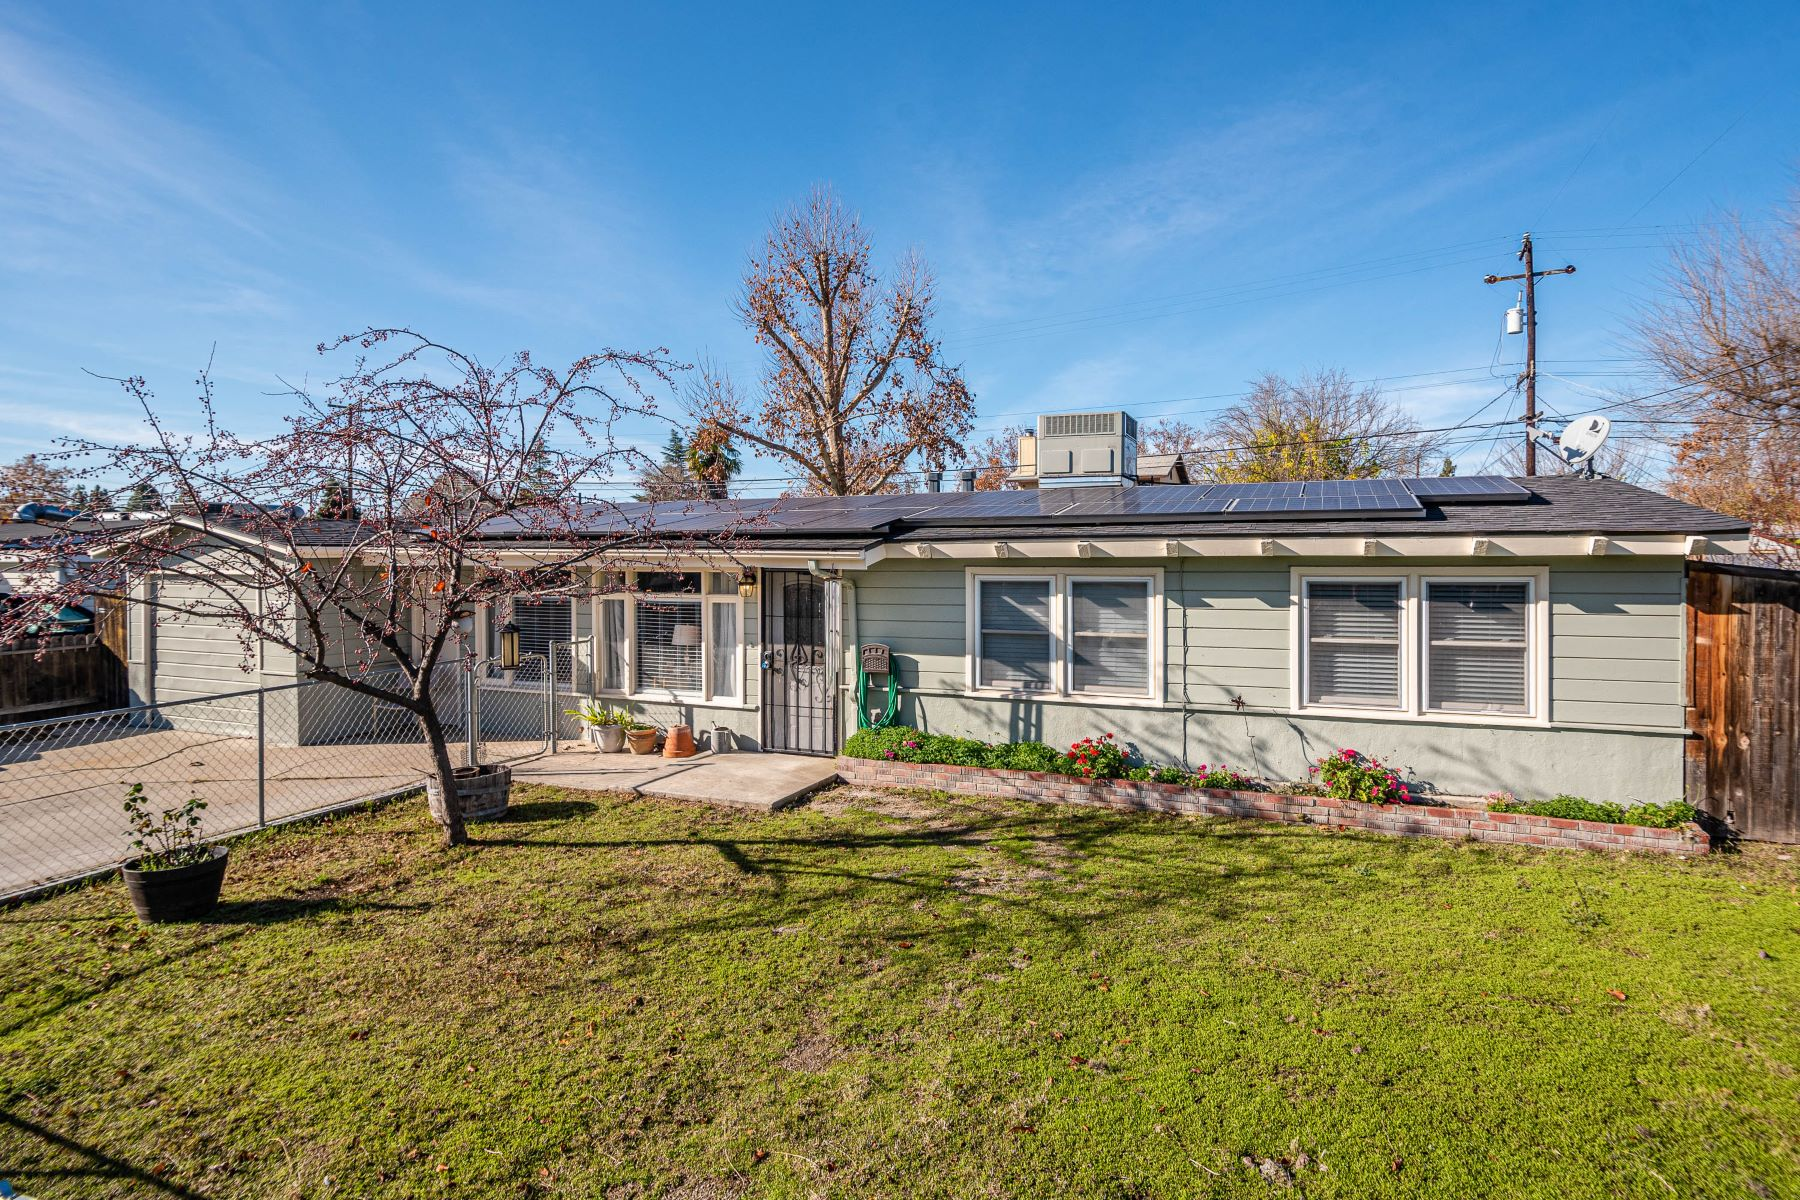 Single Family Homes for Sale at Upgraded Sherwood Acres Home 255 San Augustin Drive Paso Robles, California 93446 United States